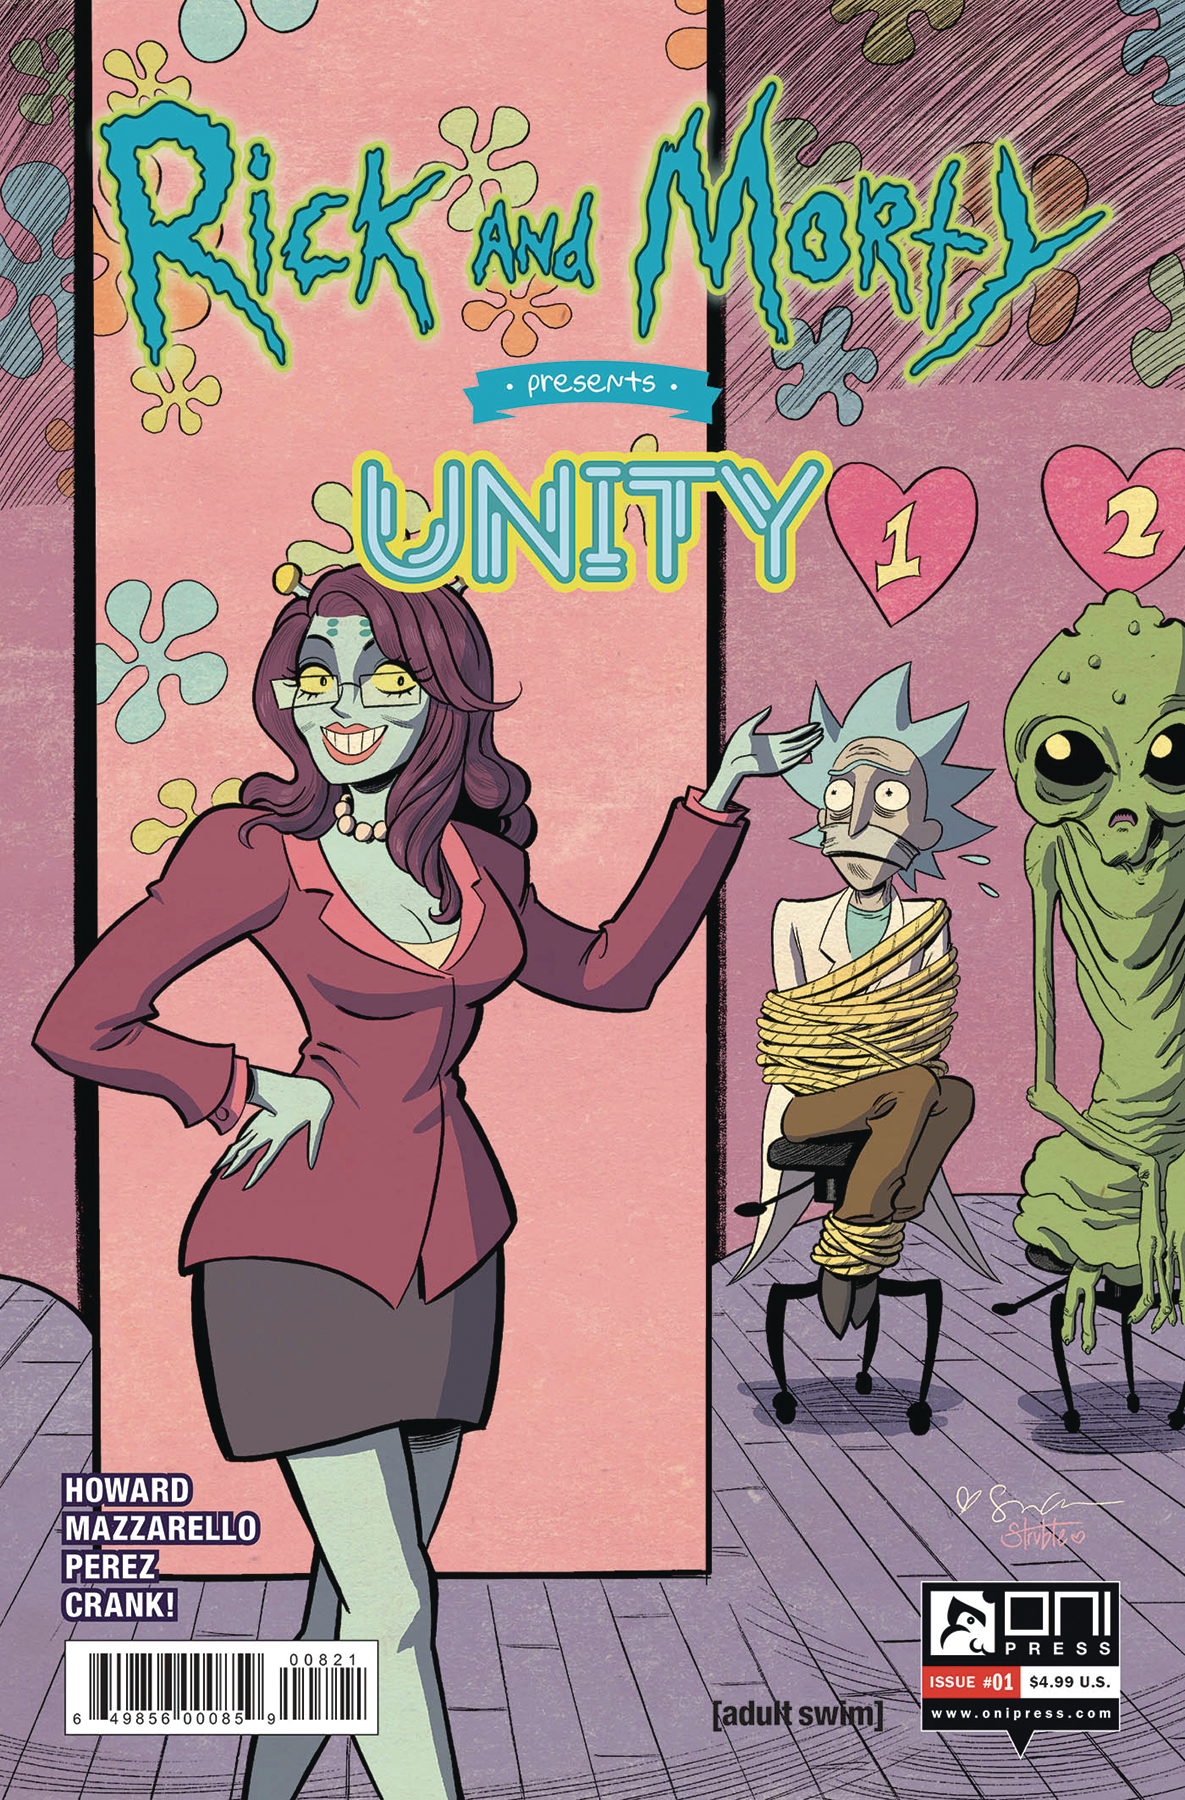 RICK AND MORTY PRESENTS UNITY #1 CVR B GRACE (MR)